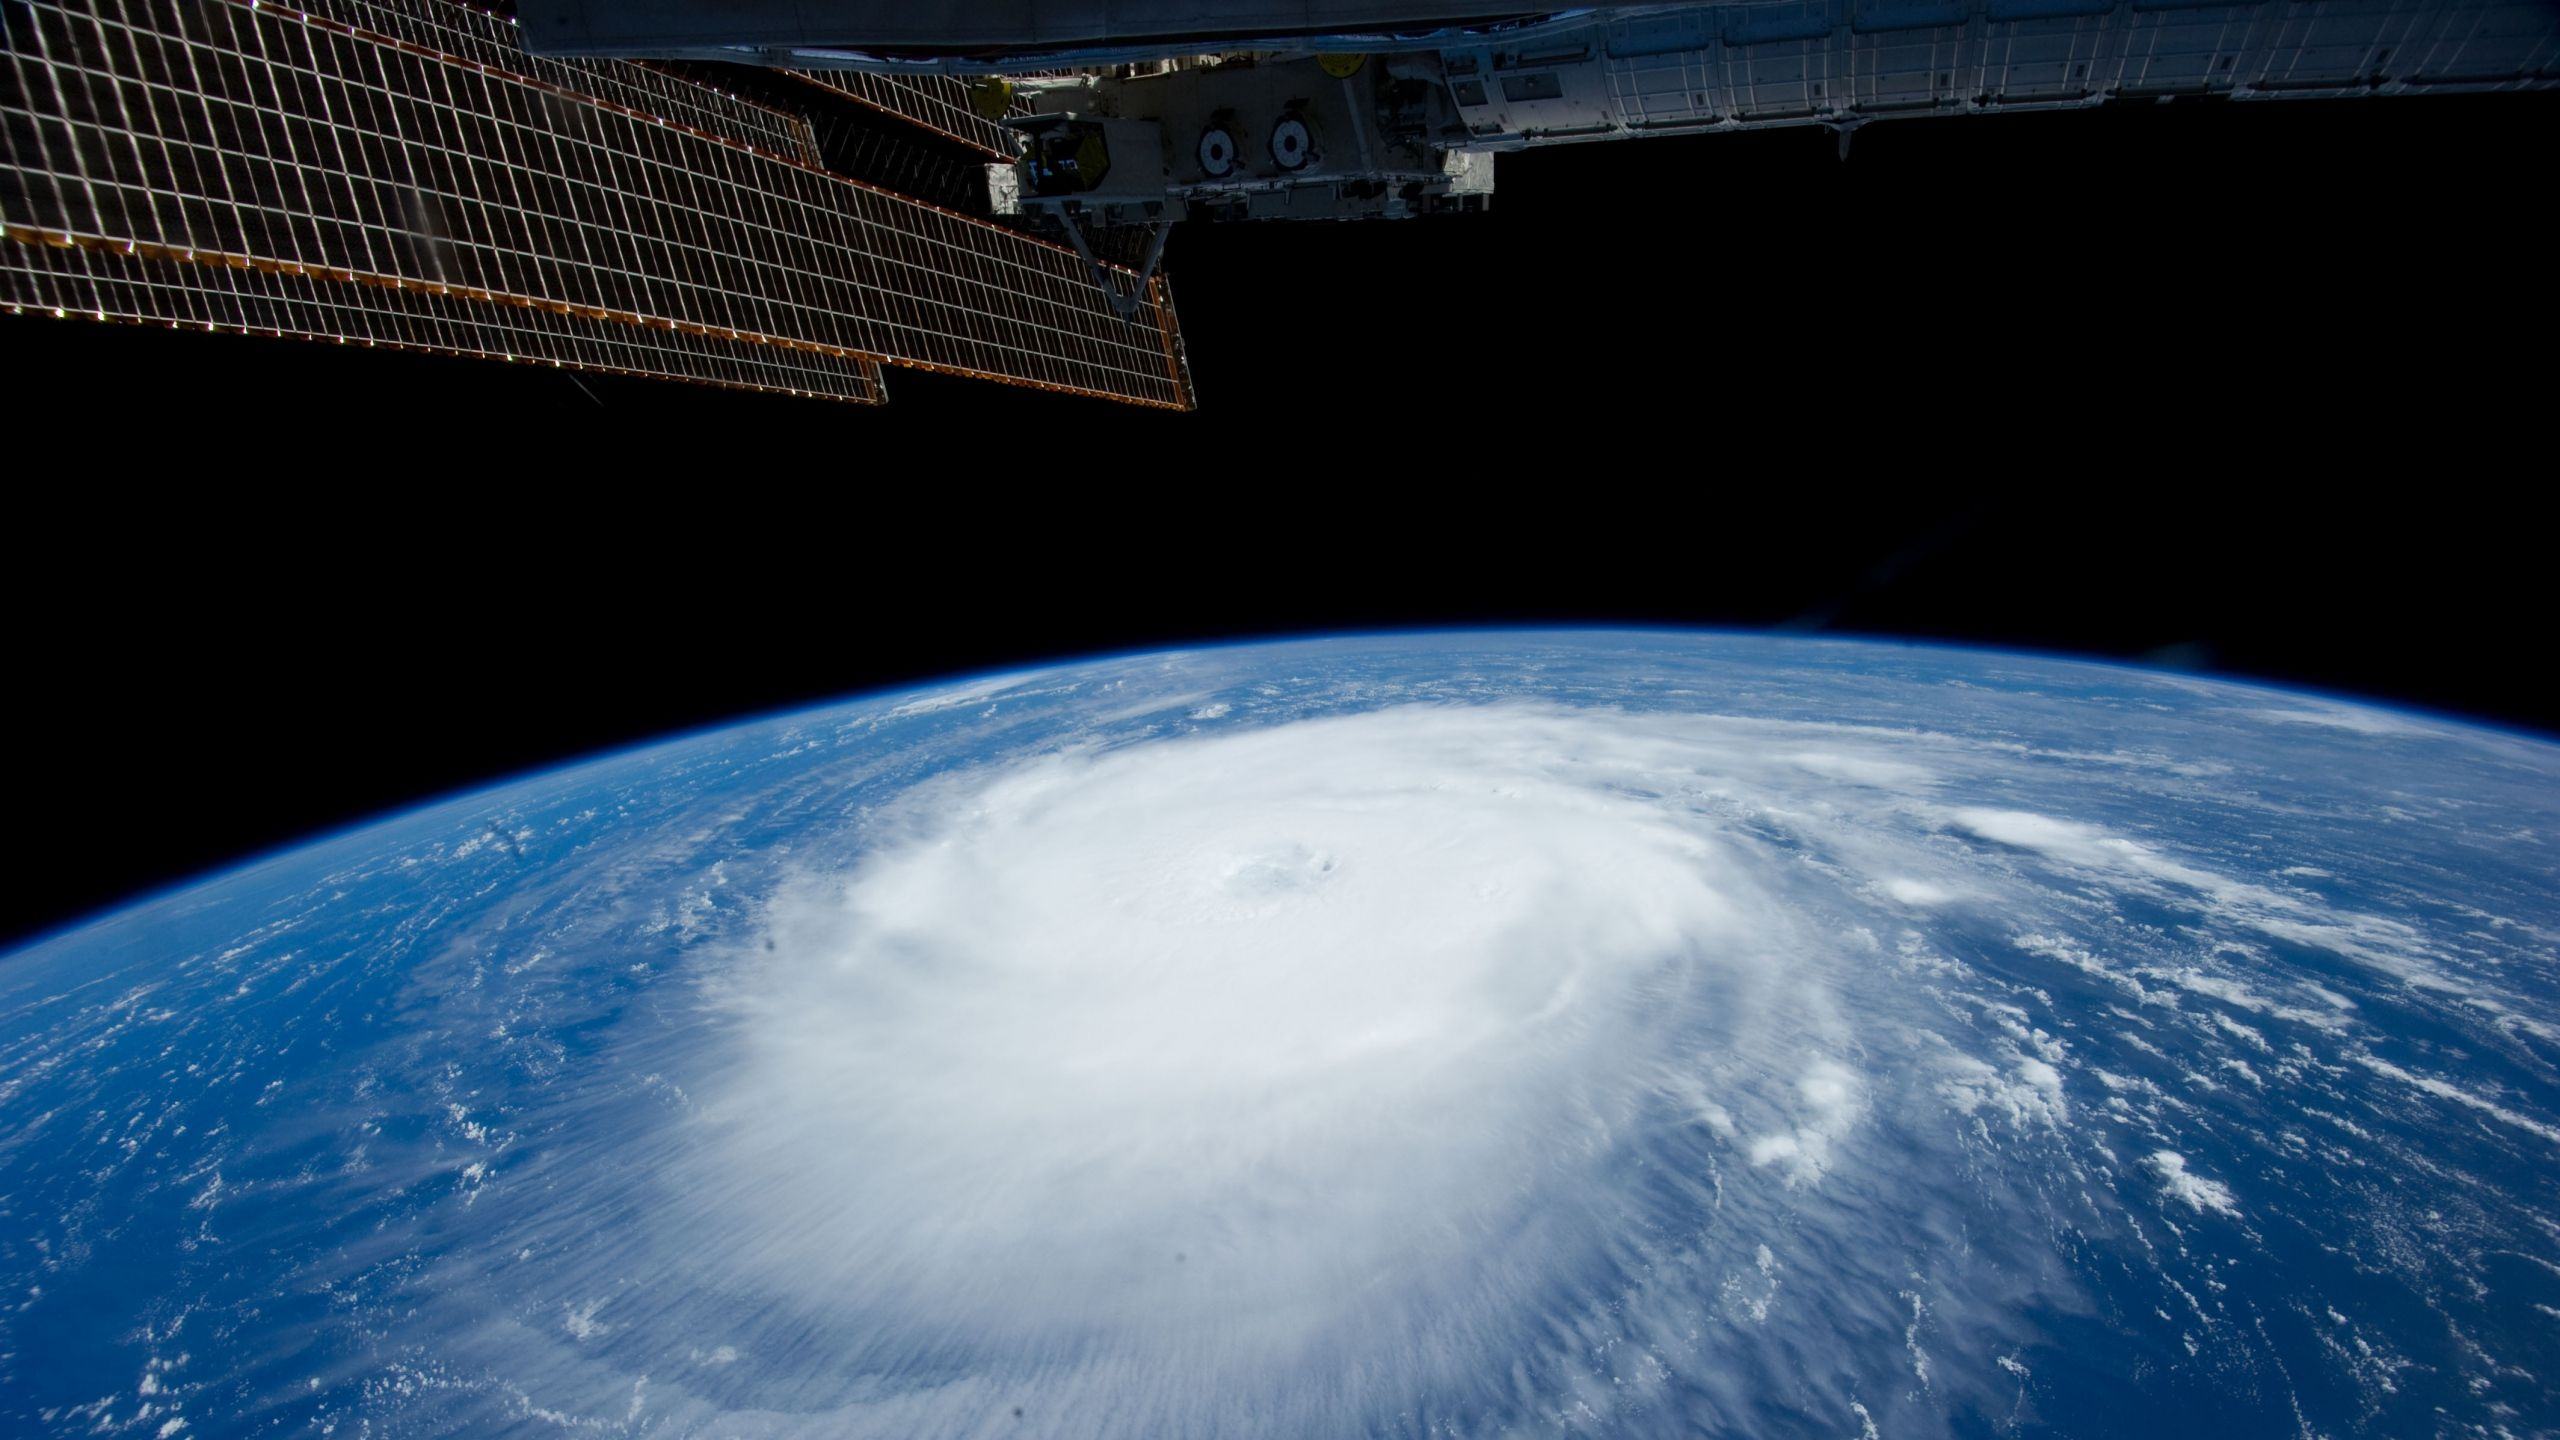 Download Wallpaper 2560x1440 Hurricane Iss Earth Clouds Storm Images Earth From Space Earth View